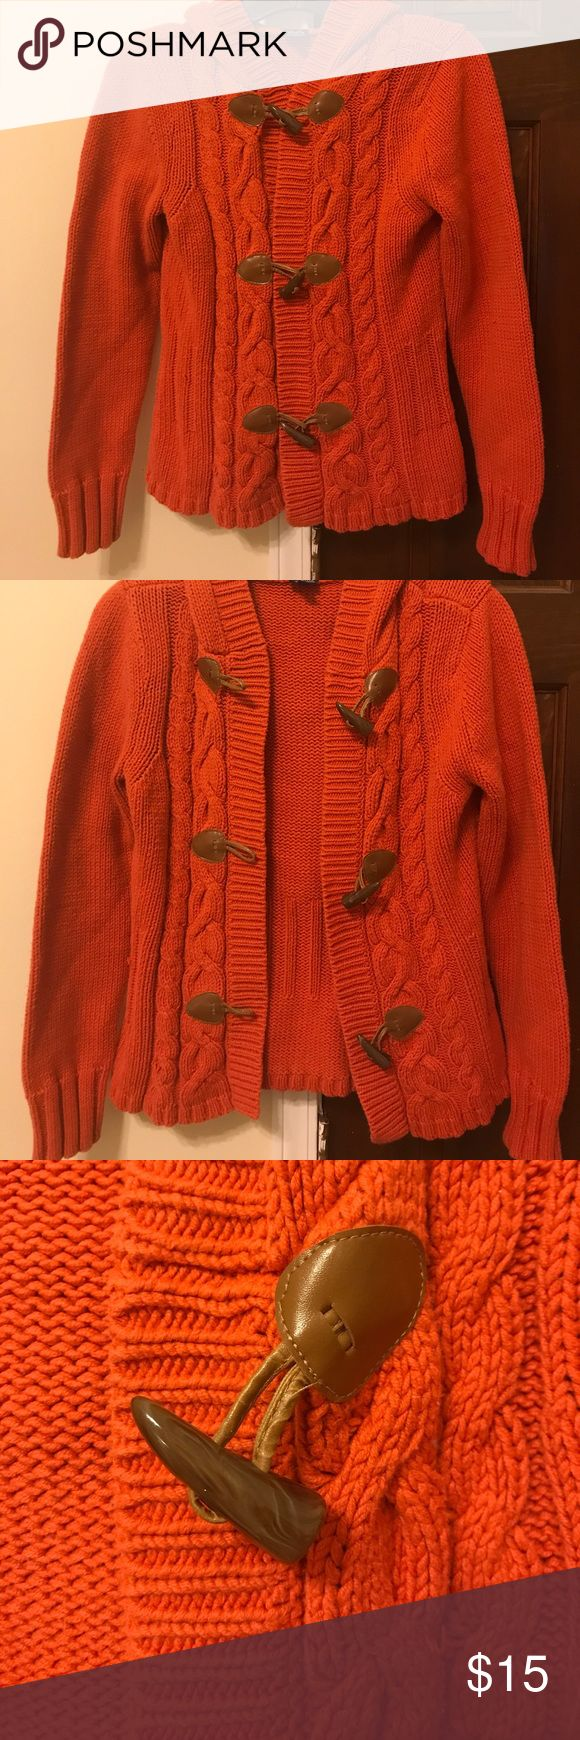 Orange hooded sweater Very cute, fashionable knit sweater with hood. Burnt orange color. Has 3 eyehook closures with cute wood pieces detailing. Very good condition. No snags or flaws. Perfect for the start of fall 😊🍂🍁🍁 Rafaella Sweaters